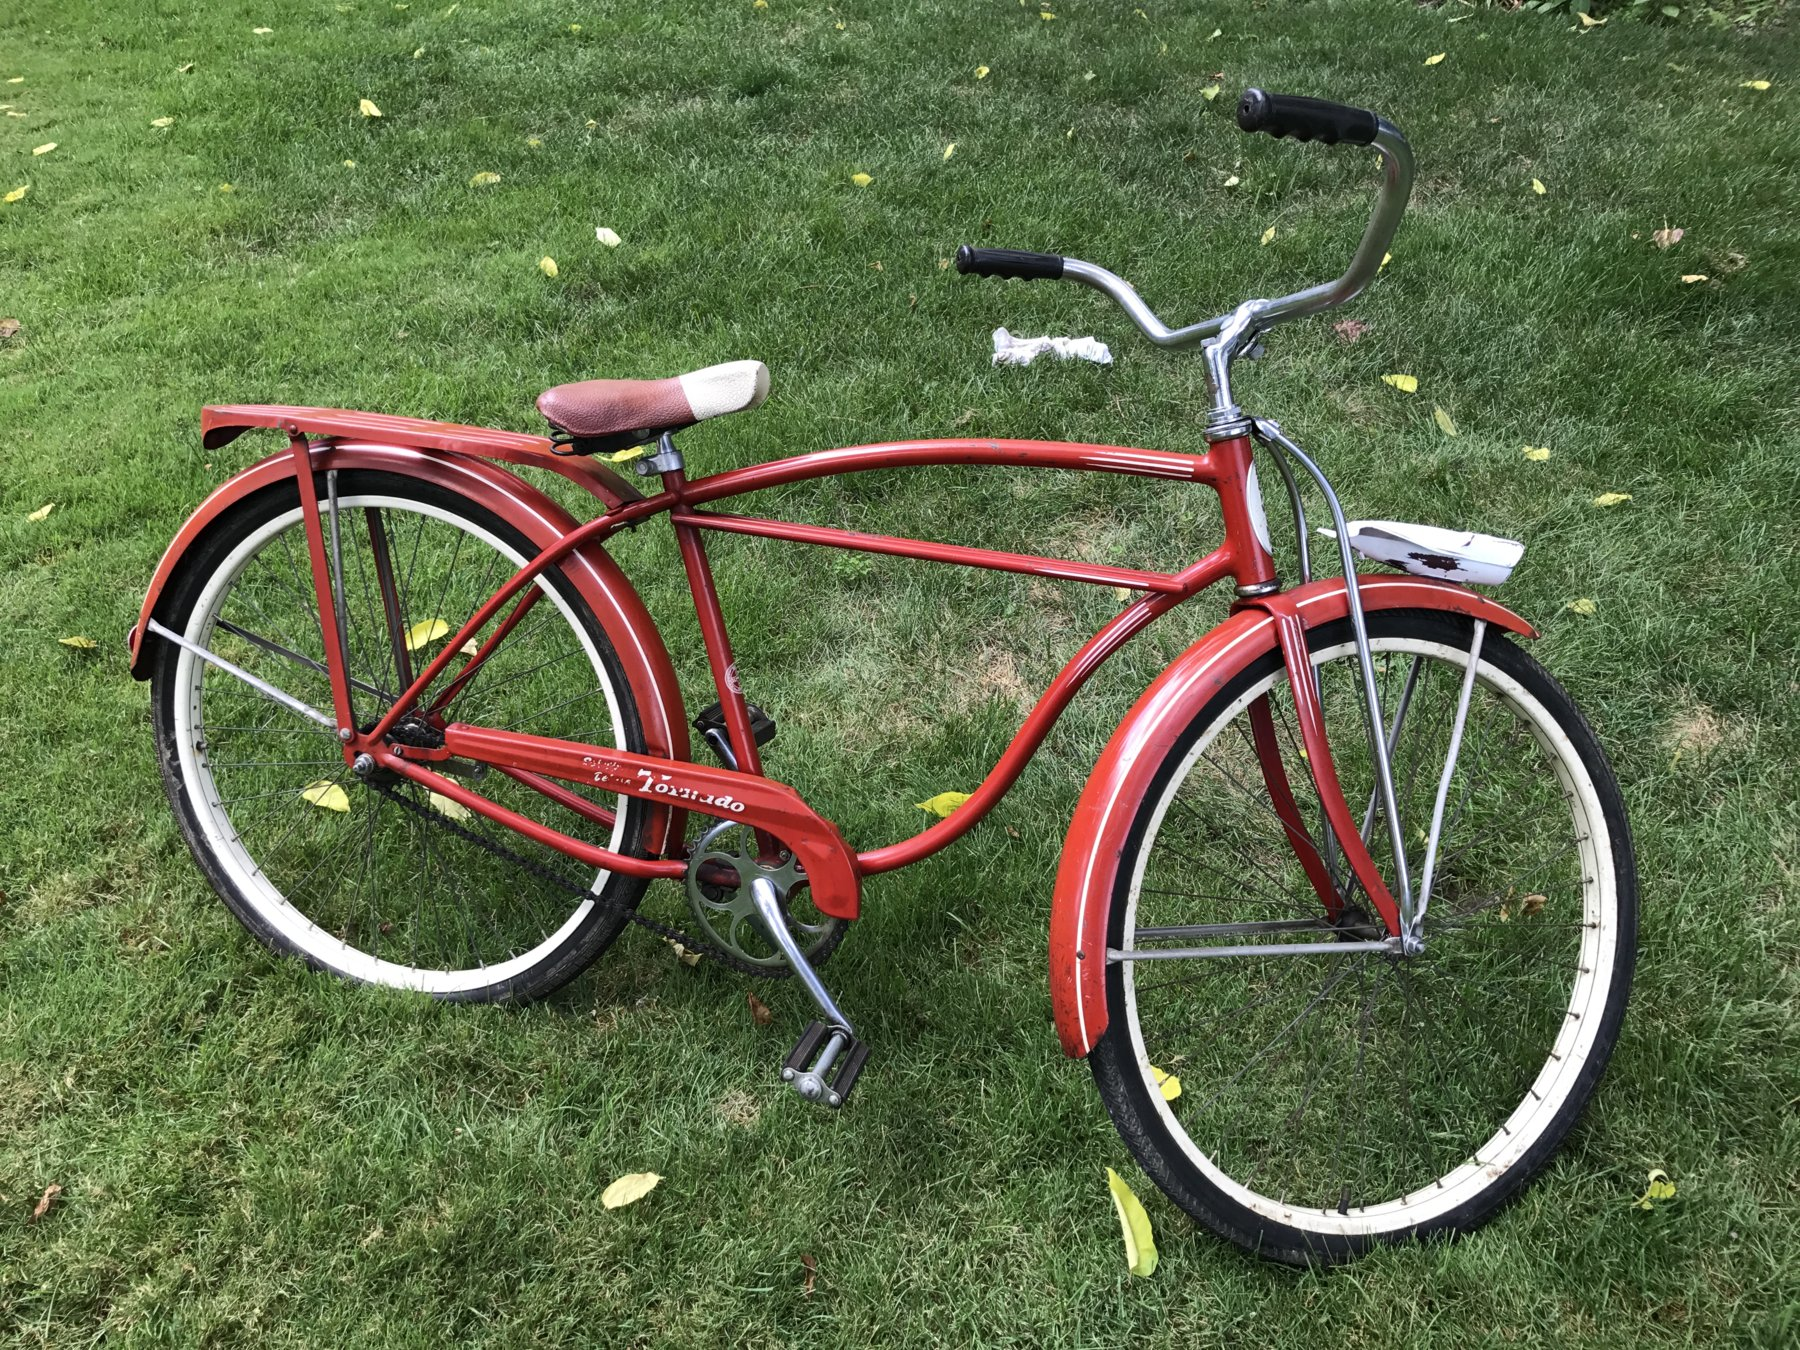 1cedeb0b53b Light works and has no rust, it's just painted and sanded to match bike  condition. Double straight bar. Offers considered.